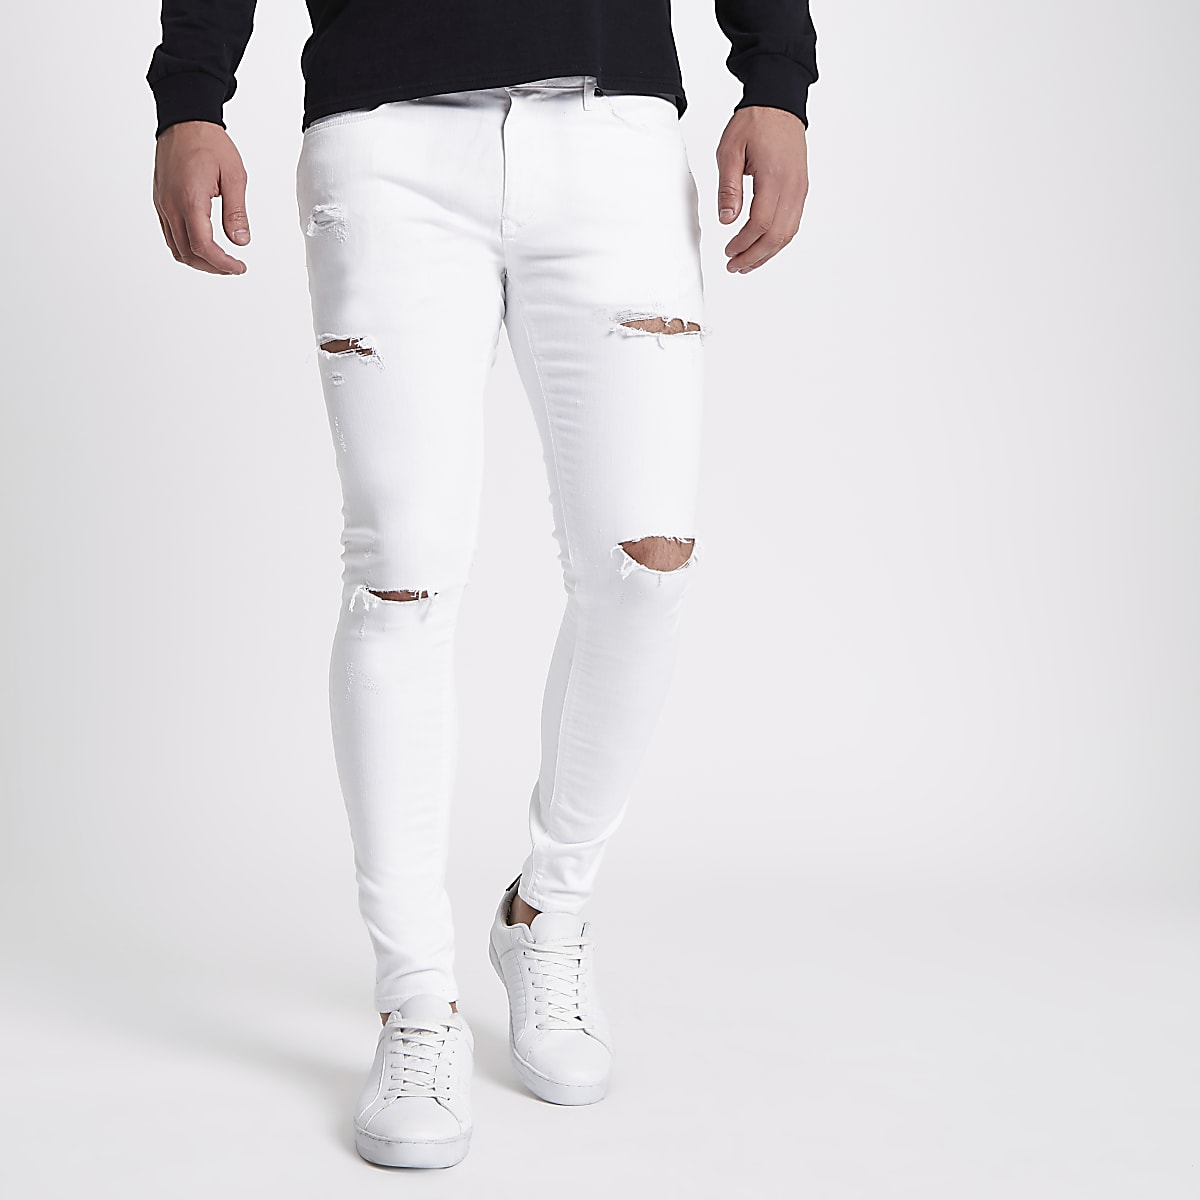 ef1f6cac6a White ripped Ollie super skinny jeans - Spray On - Jeans - men